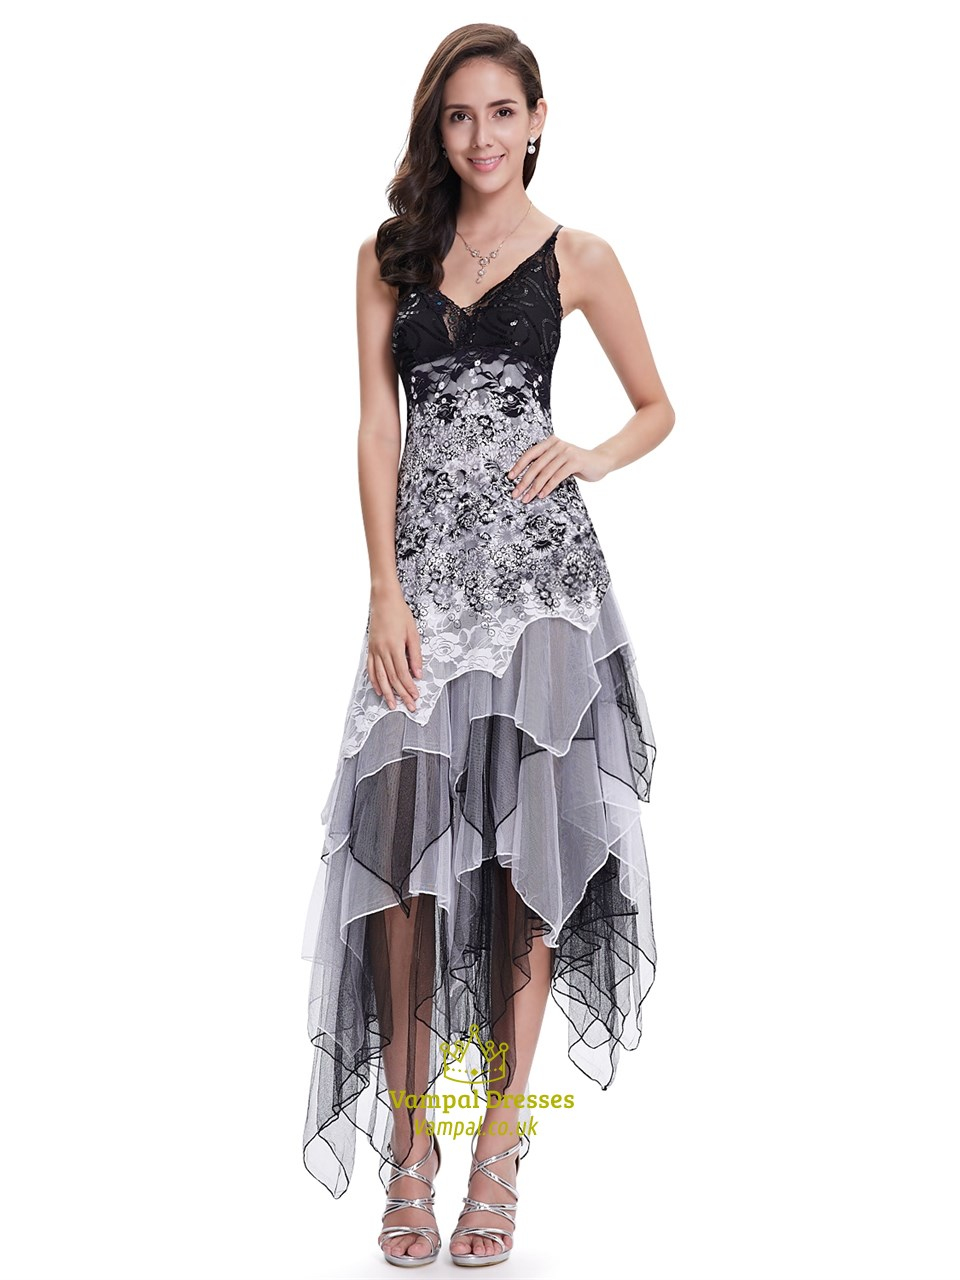 5074e1f7527f Black And White Lace Spaghetti Strap Prom Dress With Ruffled Skirt SKU  -NW1458